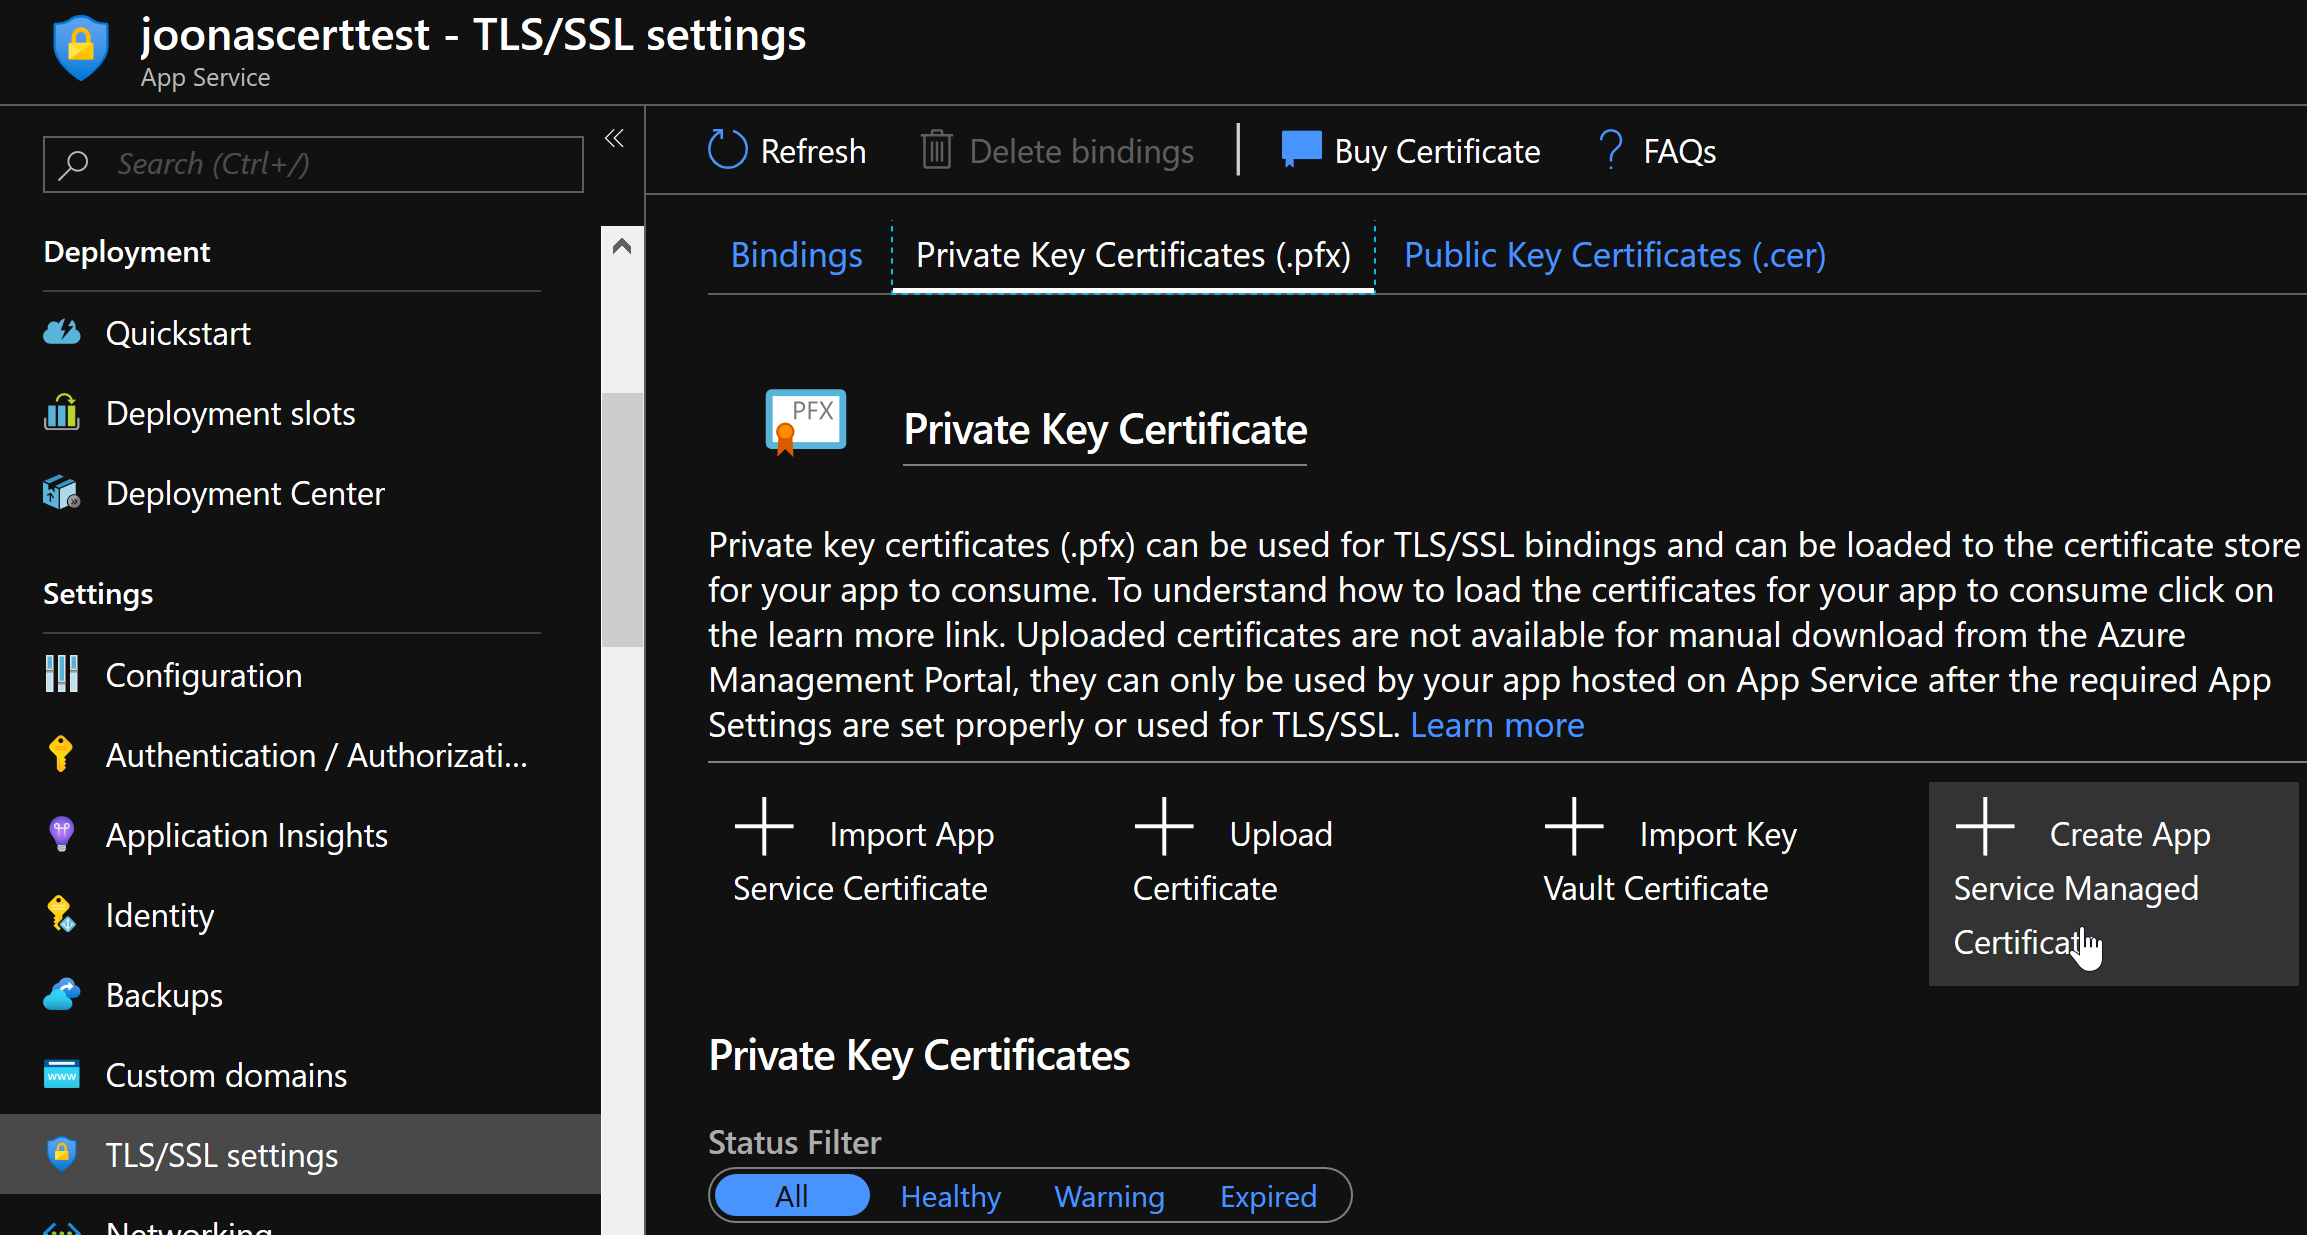 Find the Create App Service Managed Certificate button in TLS/SSL settings